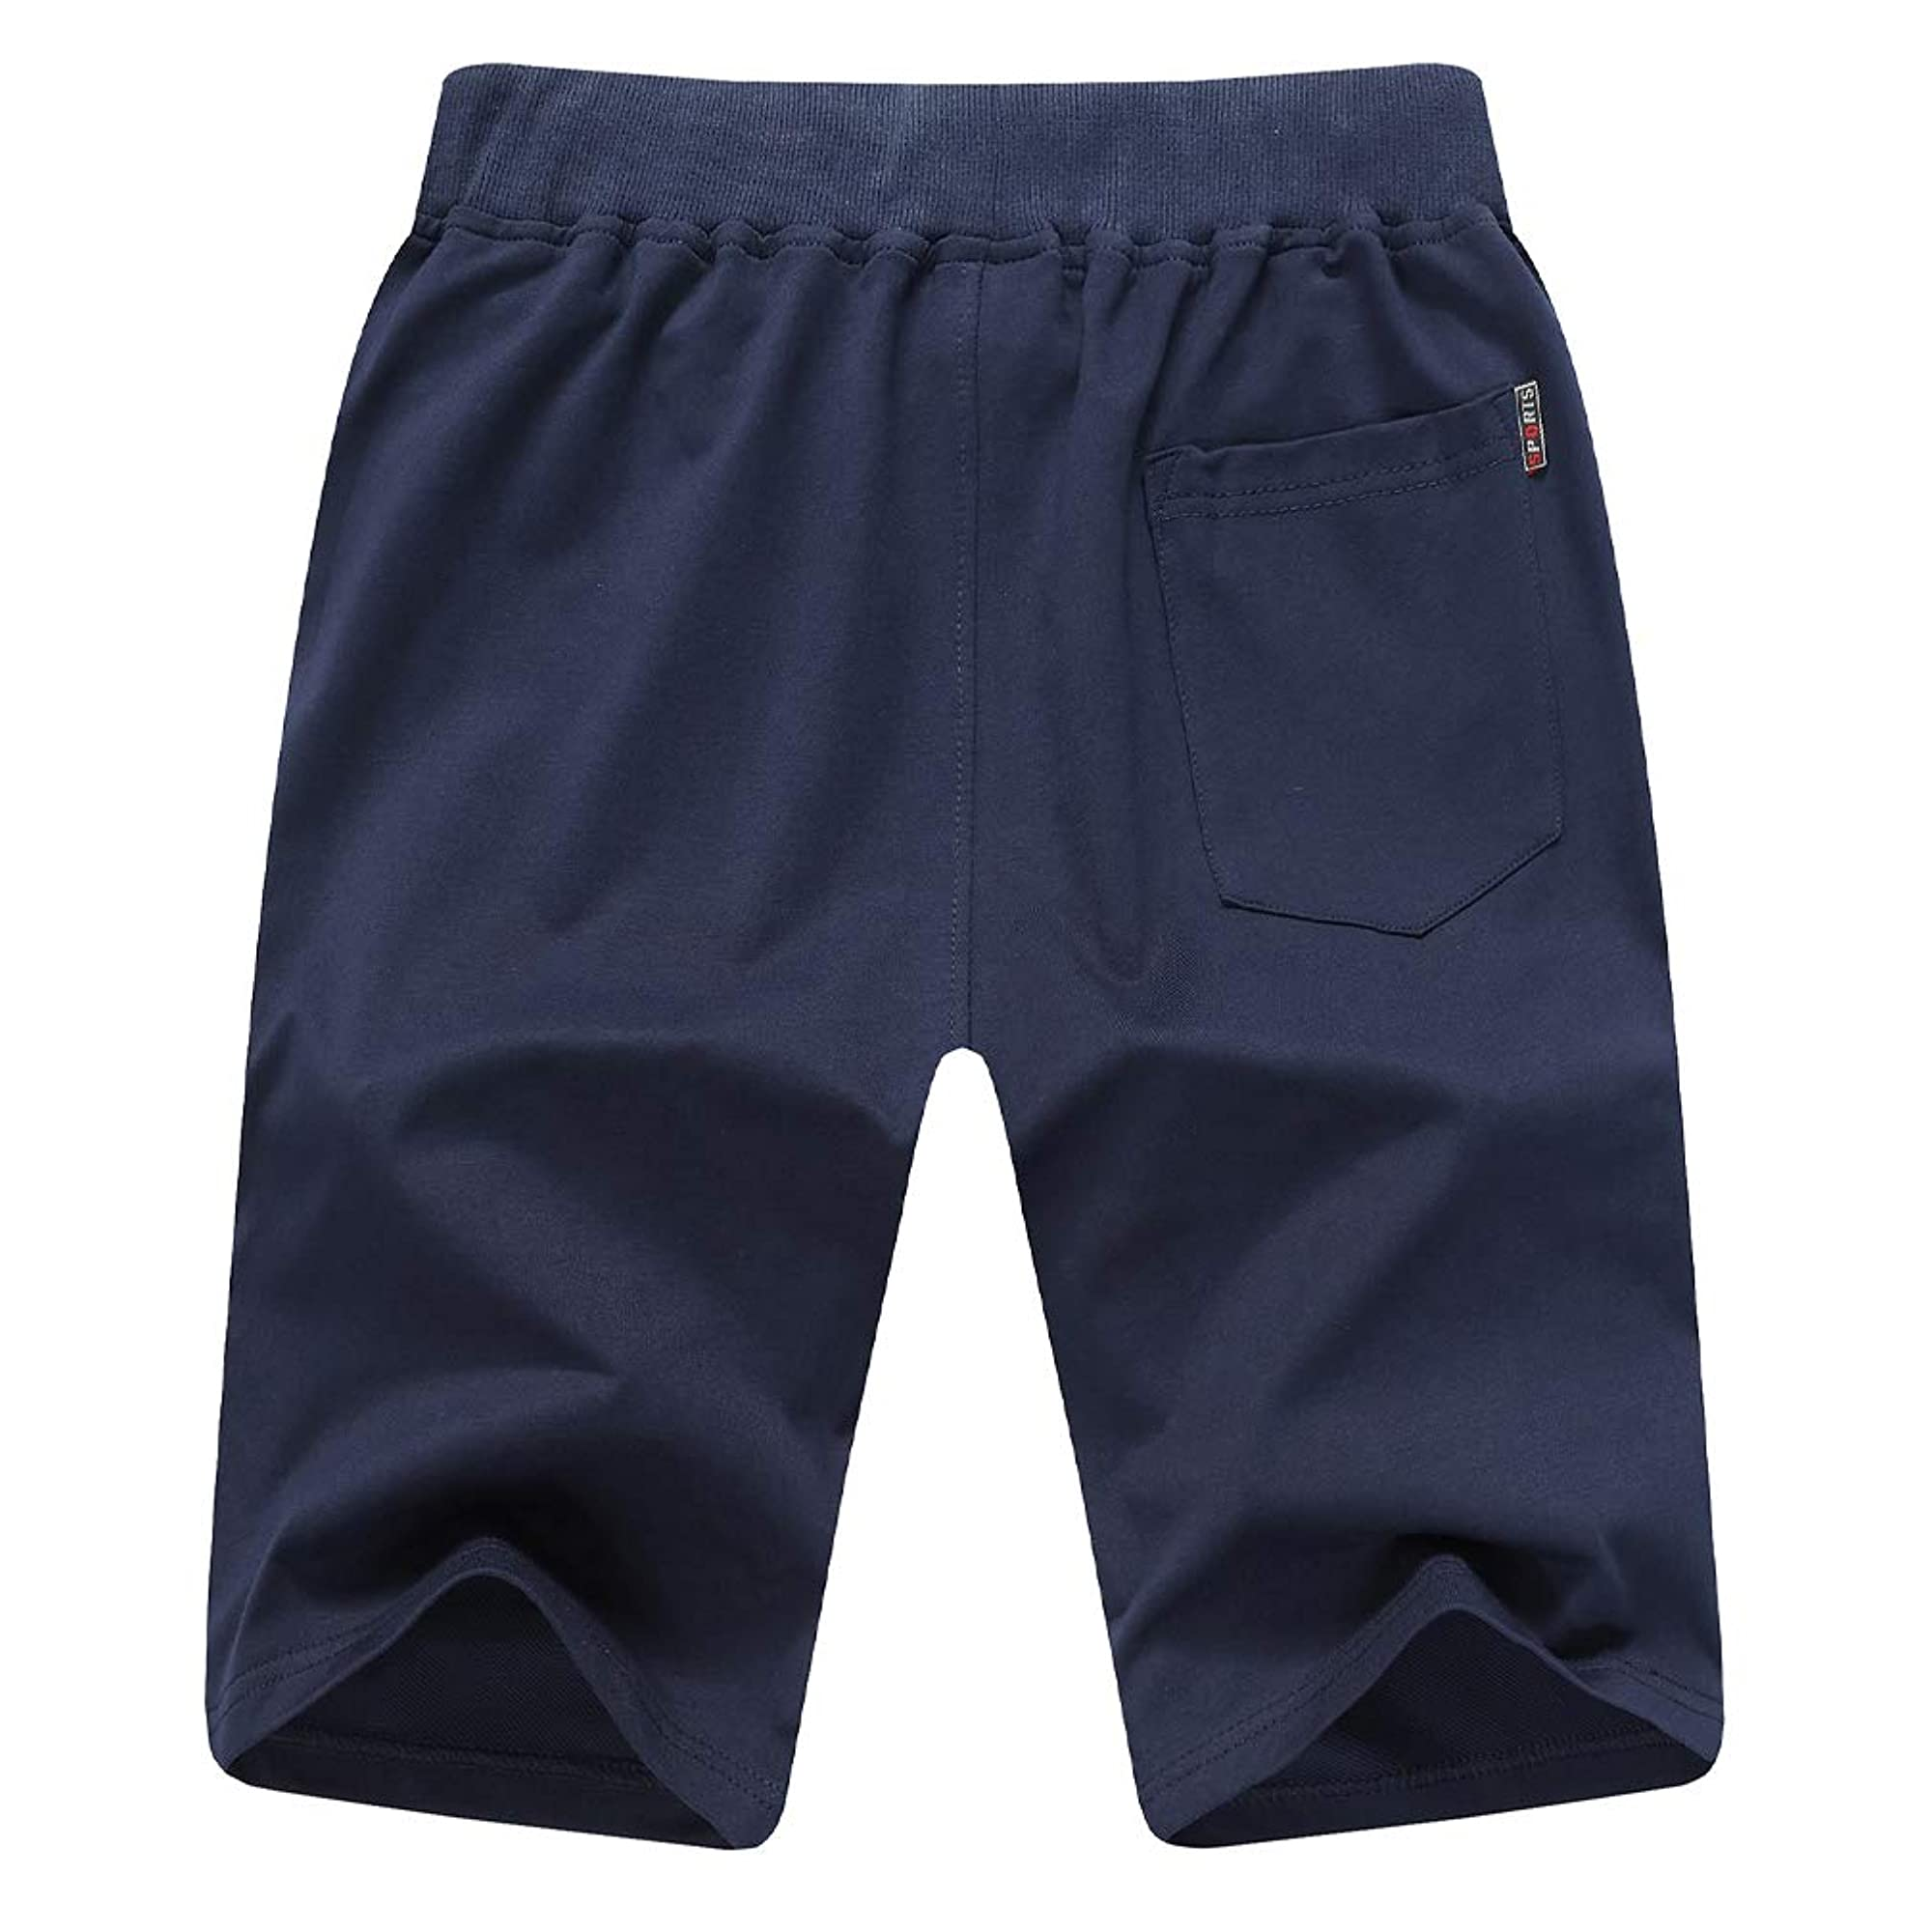 Sports Shorts For Men With Zipper Pockets